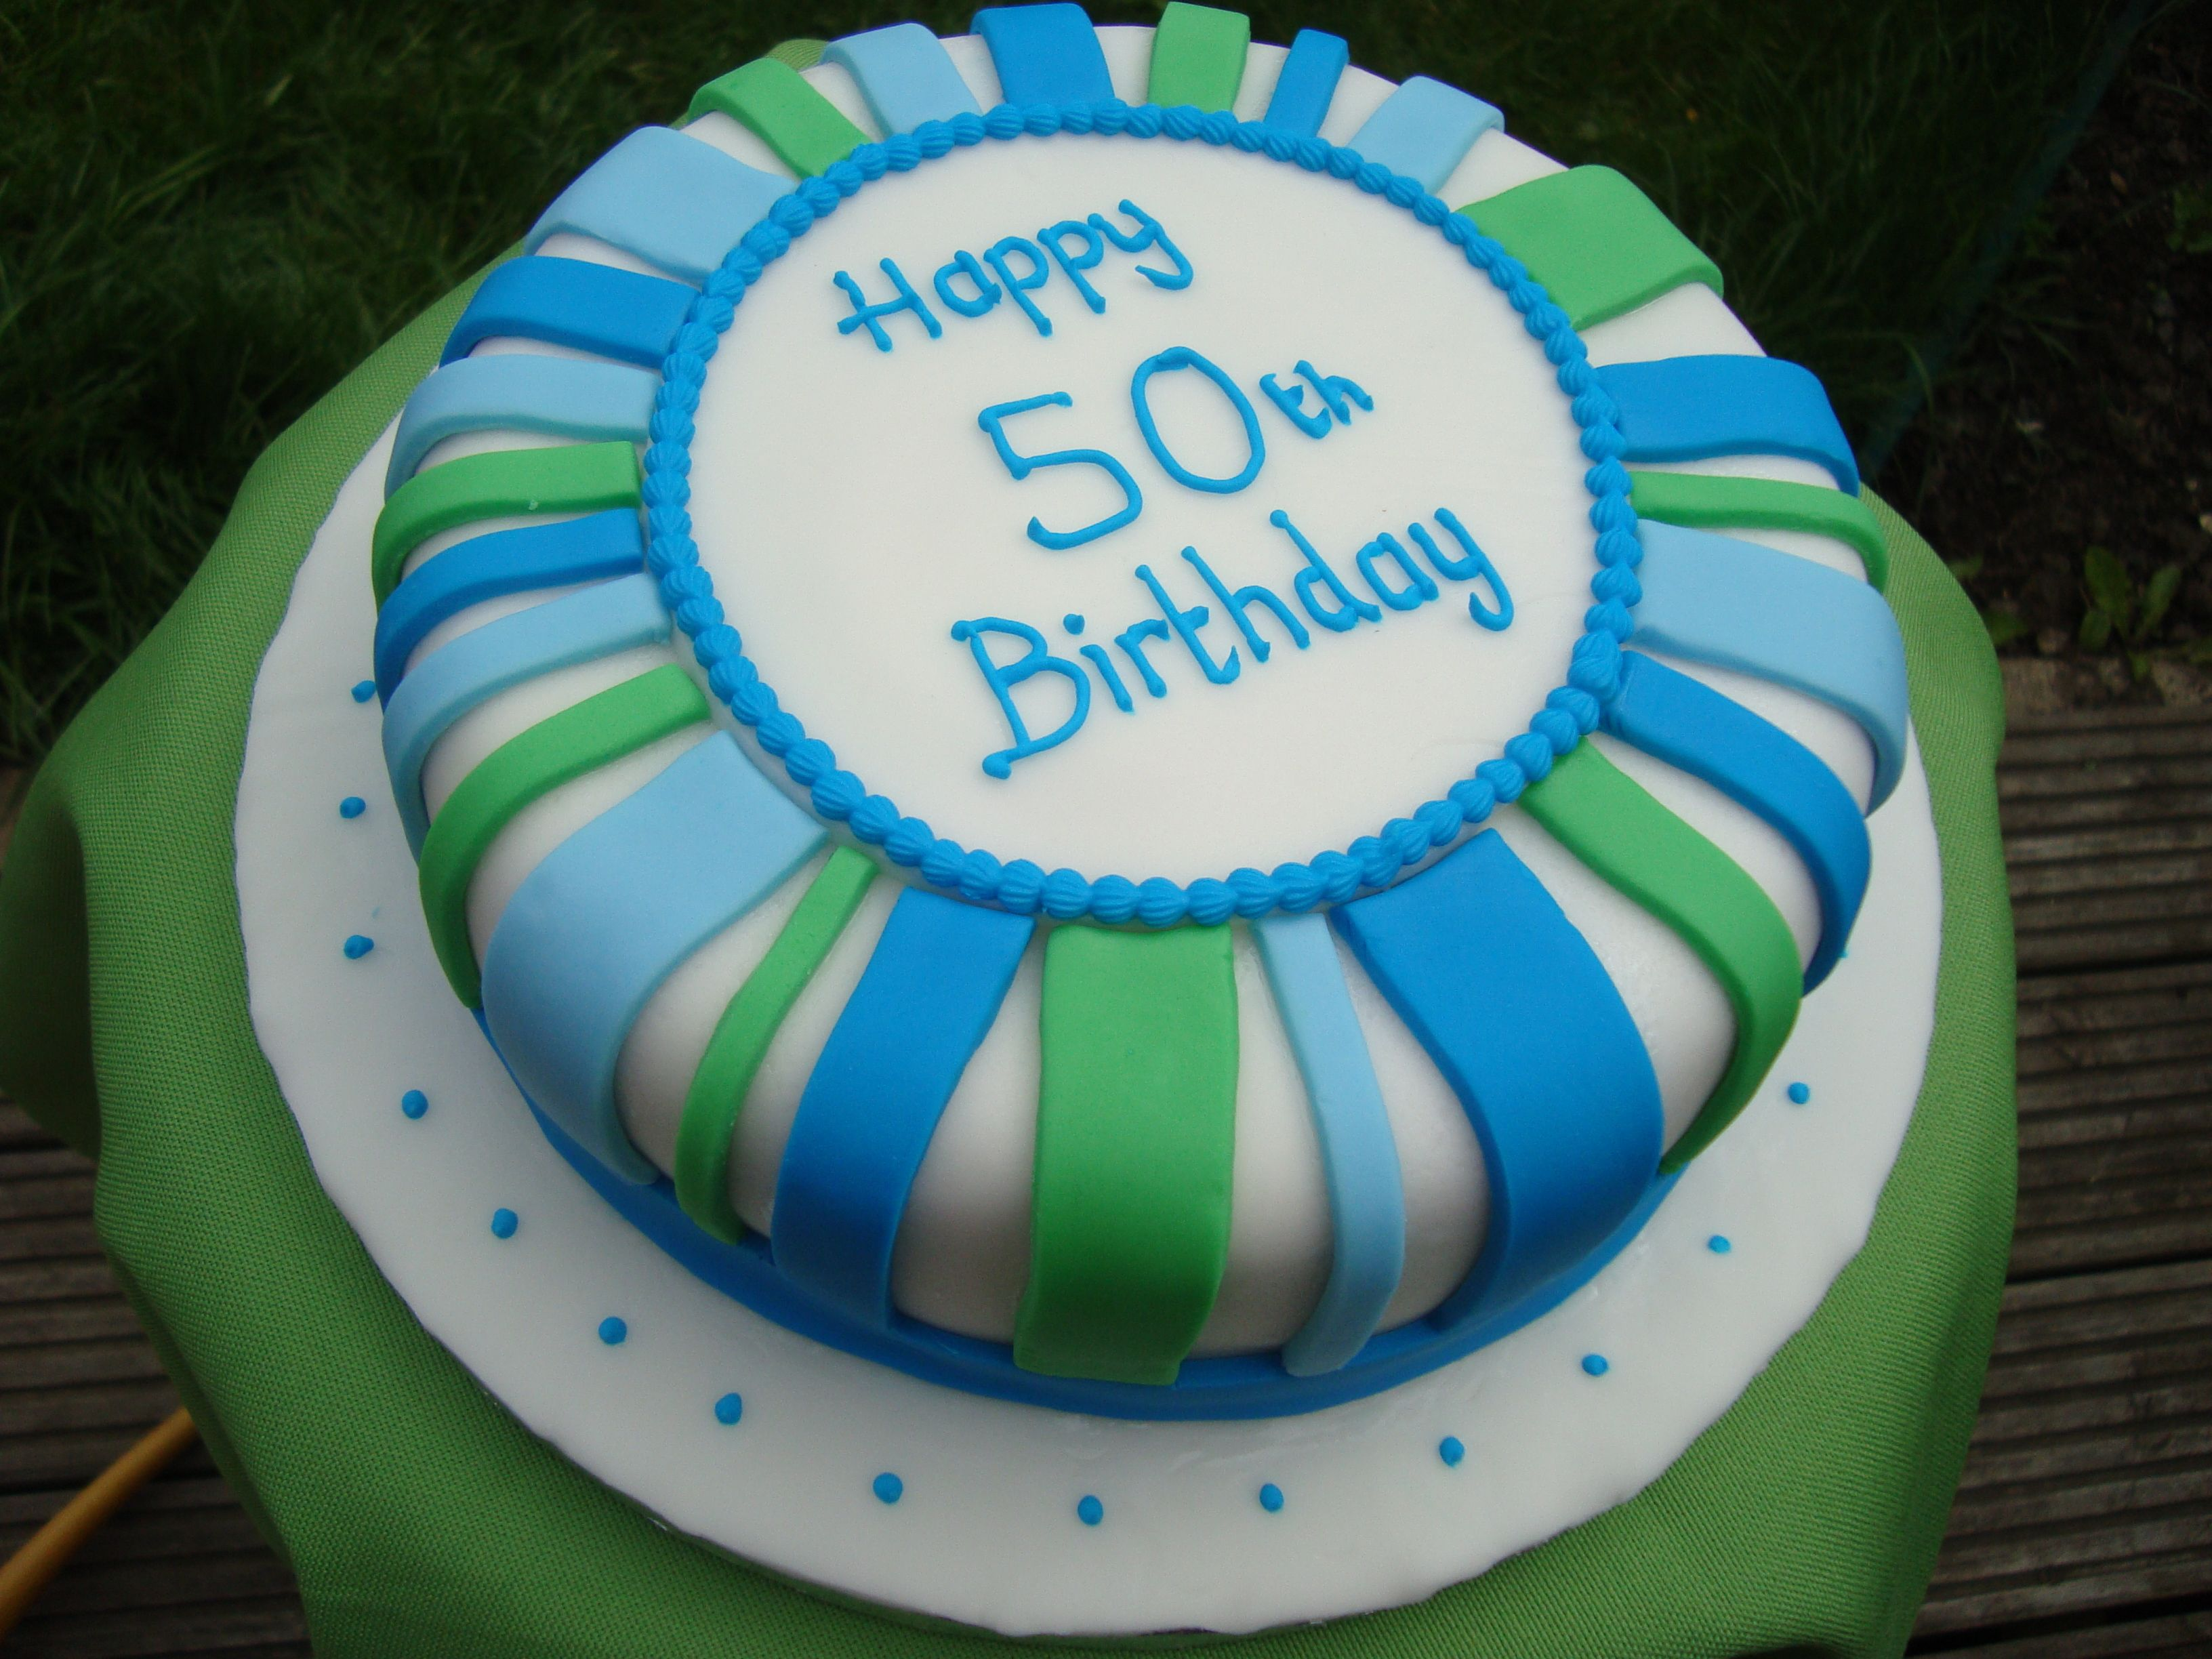 Men 39 s bday cakes on pinterest for 50th birthday cake decoration ideas